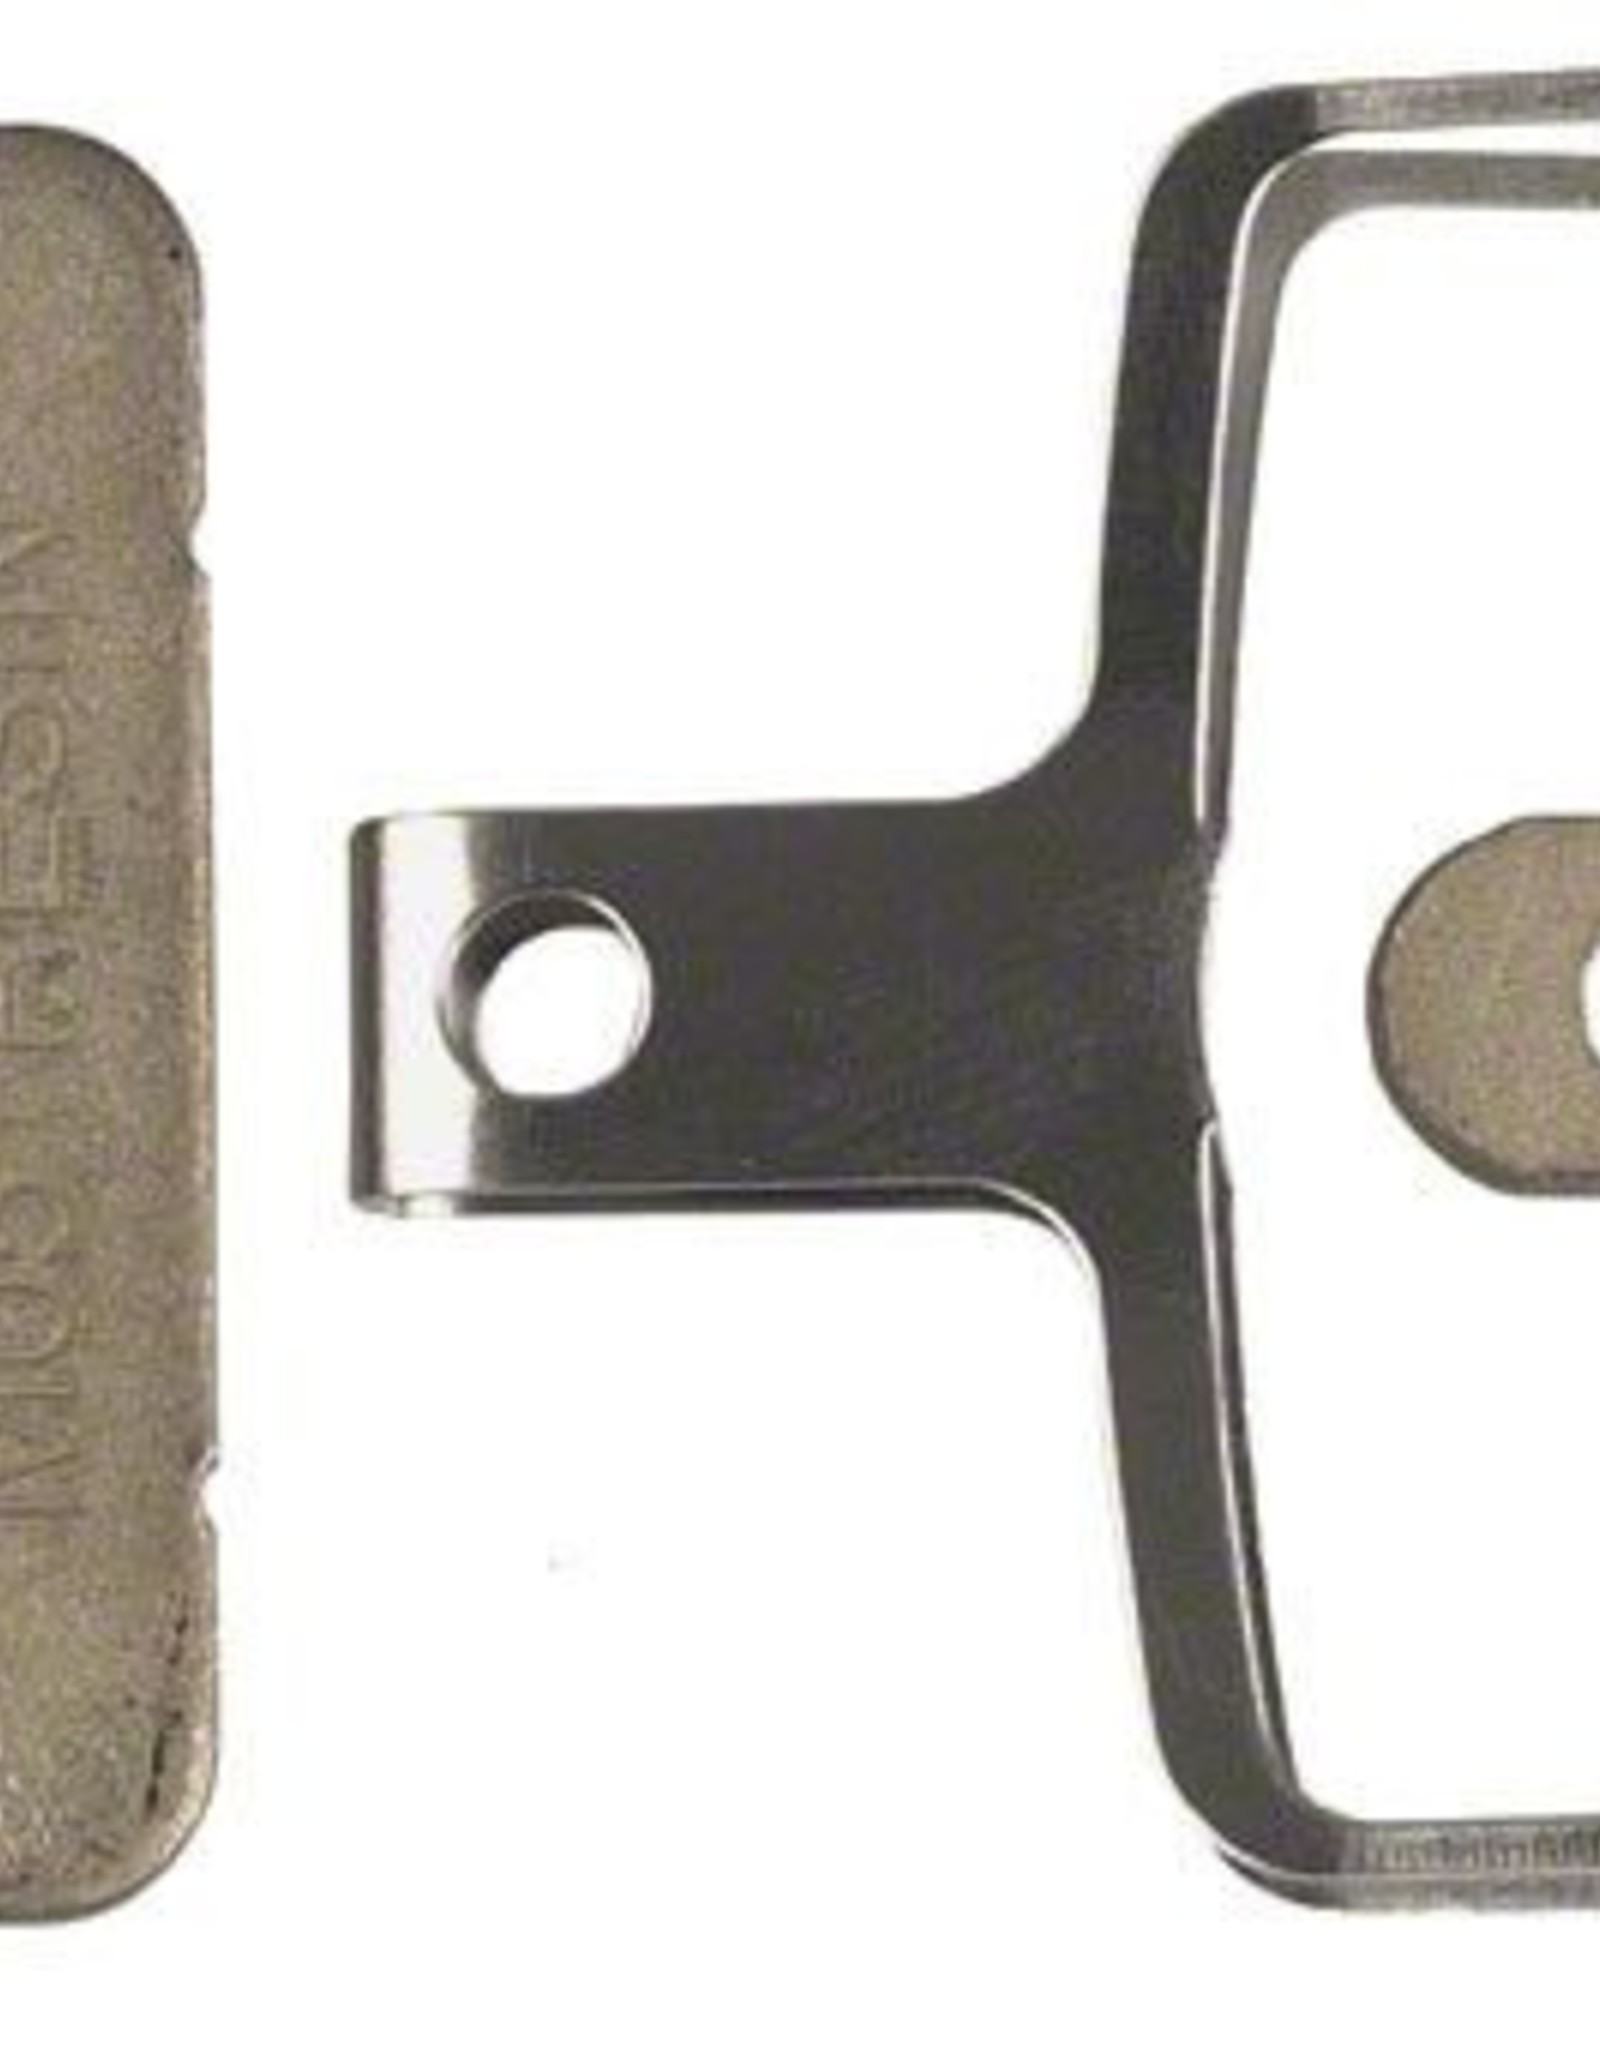 Shimano M05 Resin Disc Brake Pads and Spring for Deore M515, M515LA and Nexave C601 Calipers